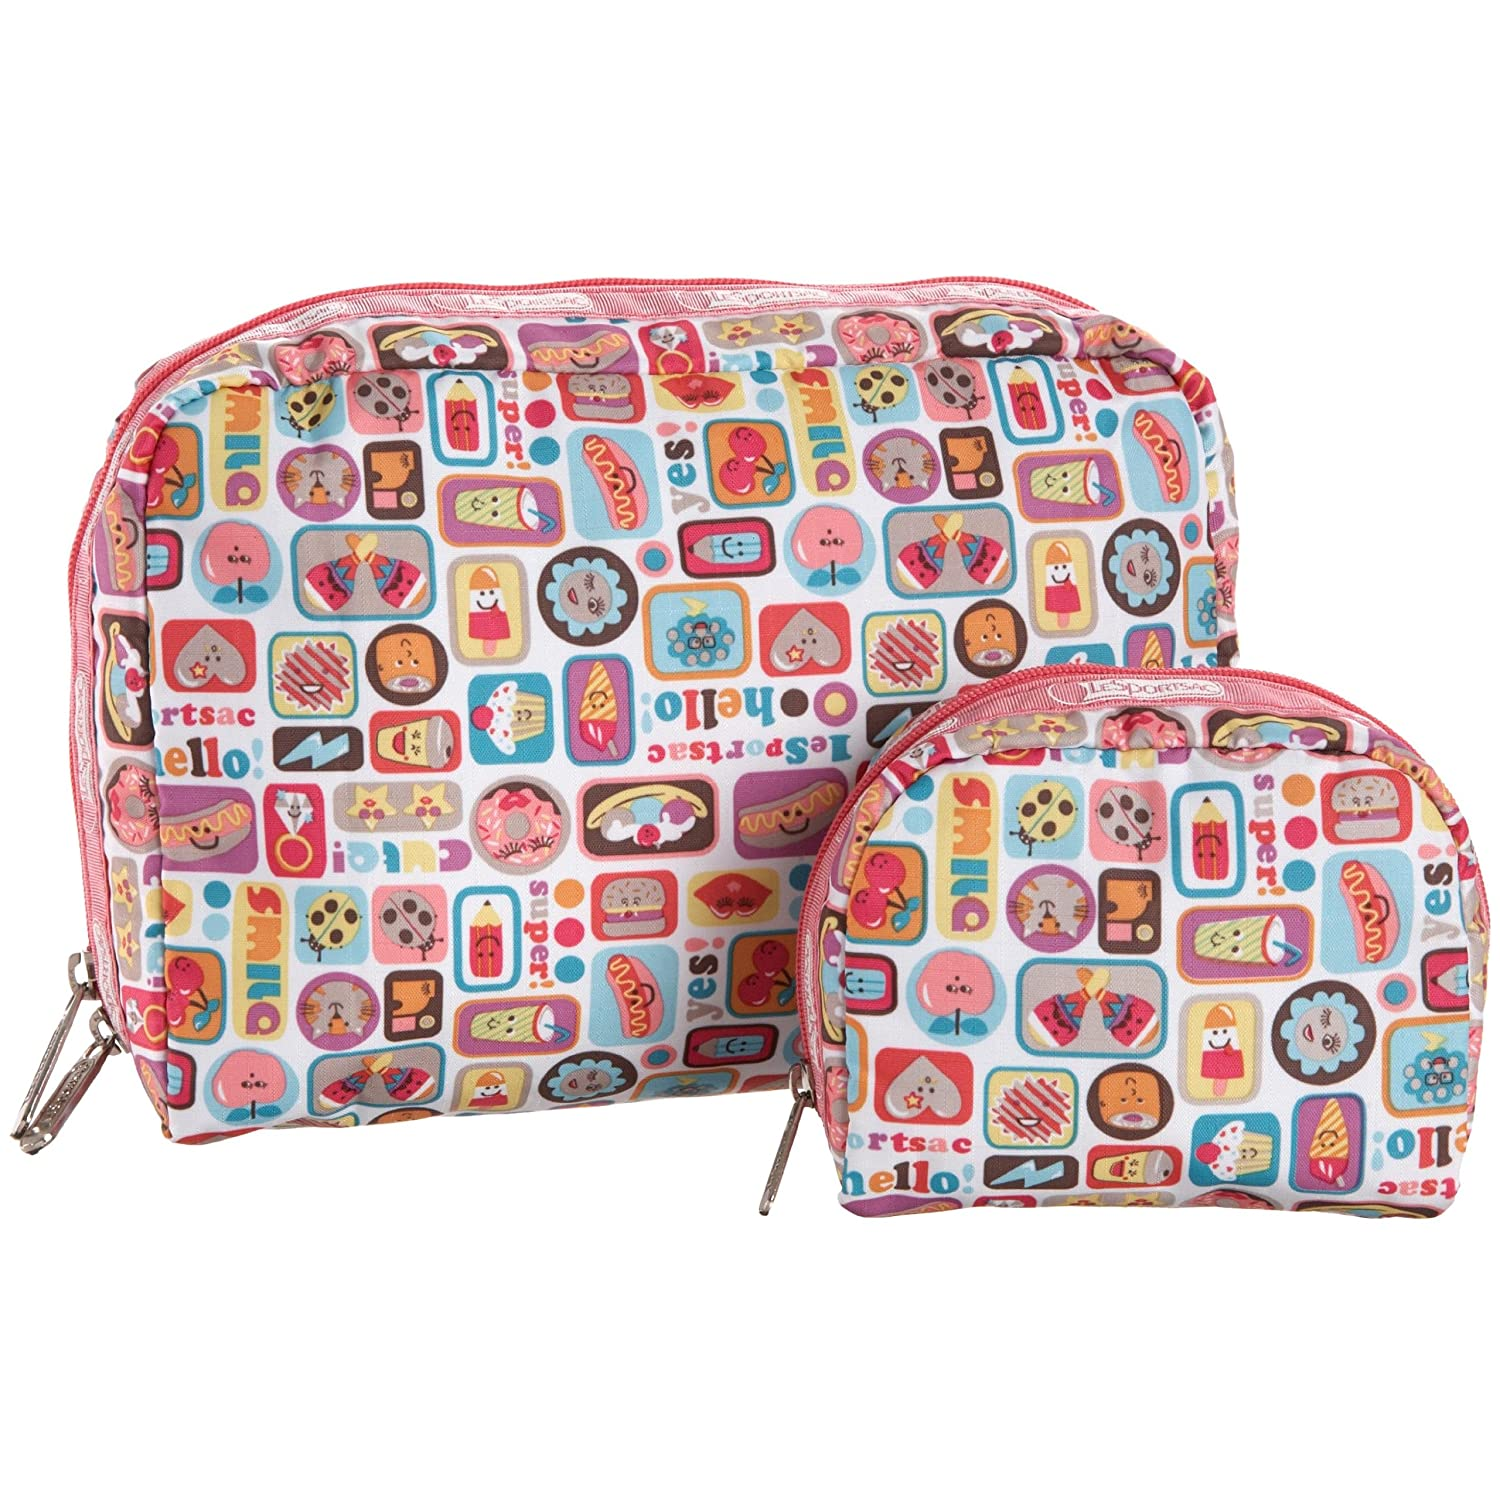 LeSportsac - Xl Rectangular And Square Cosmetic Case from endless.com